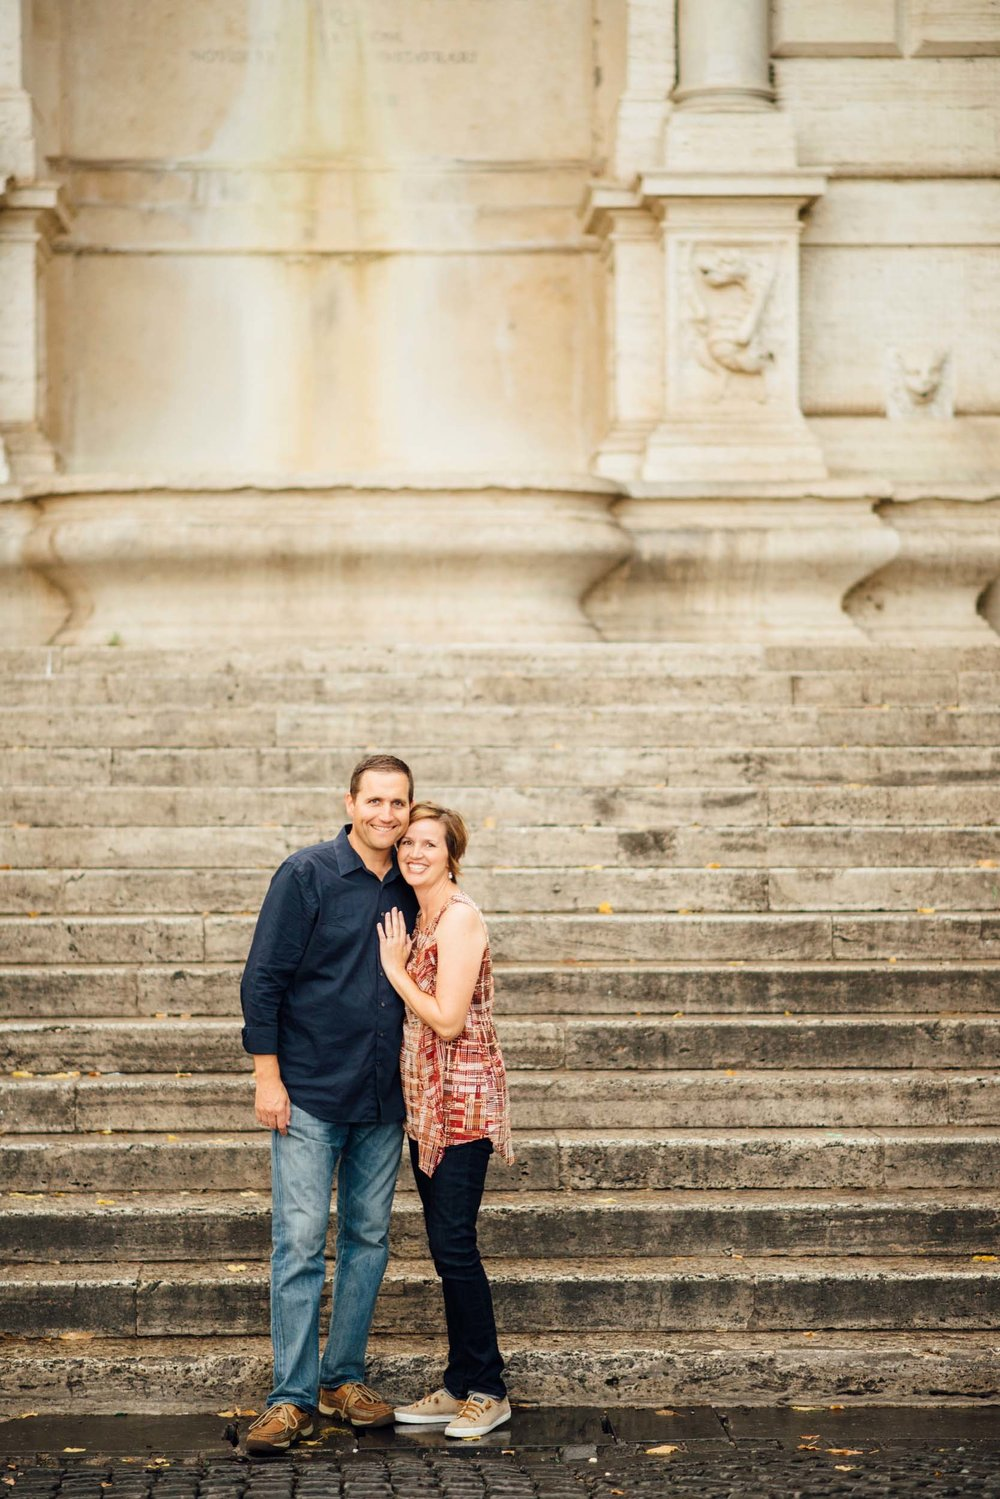 Rome vacation photographer